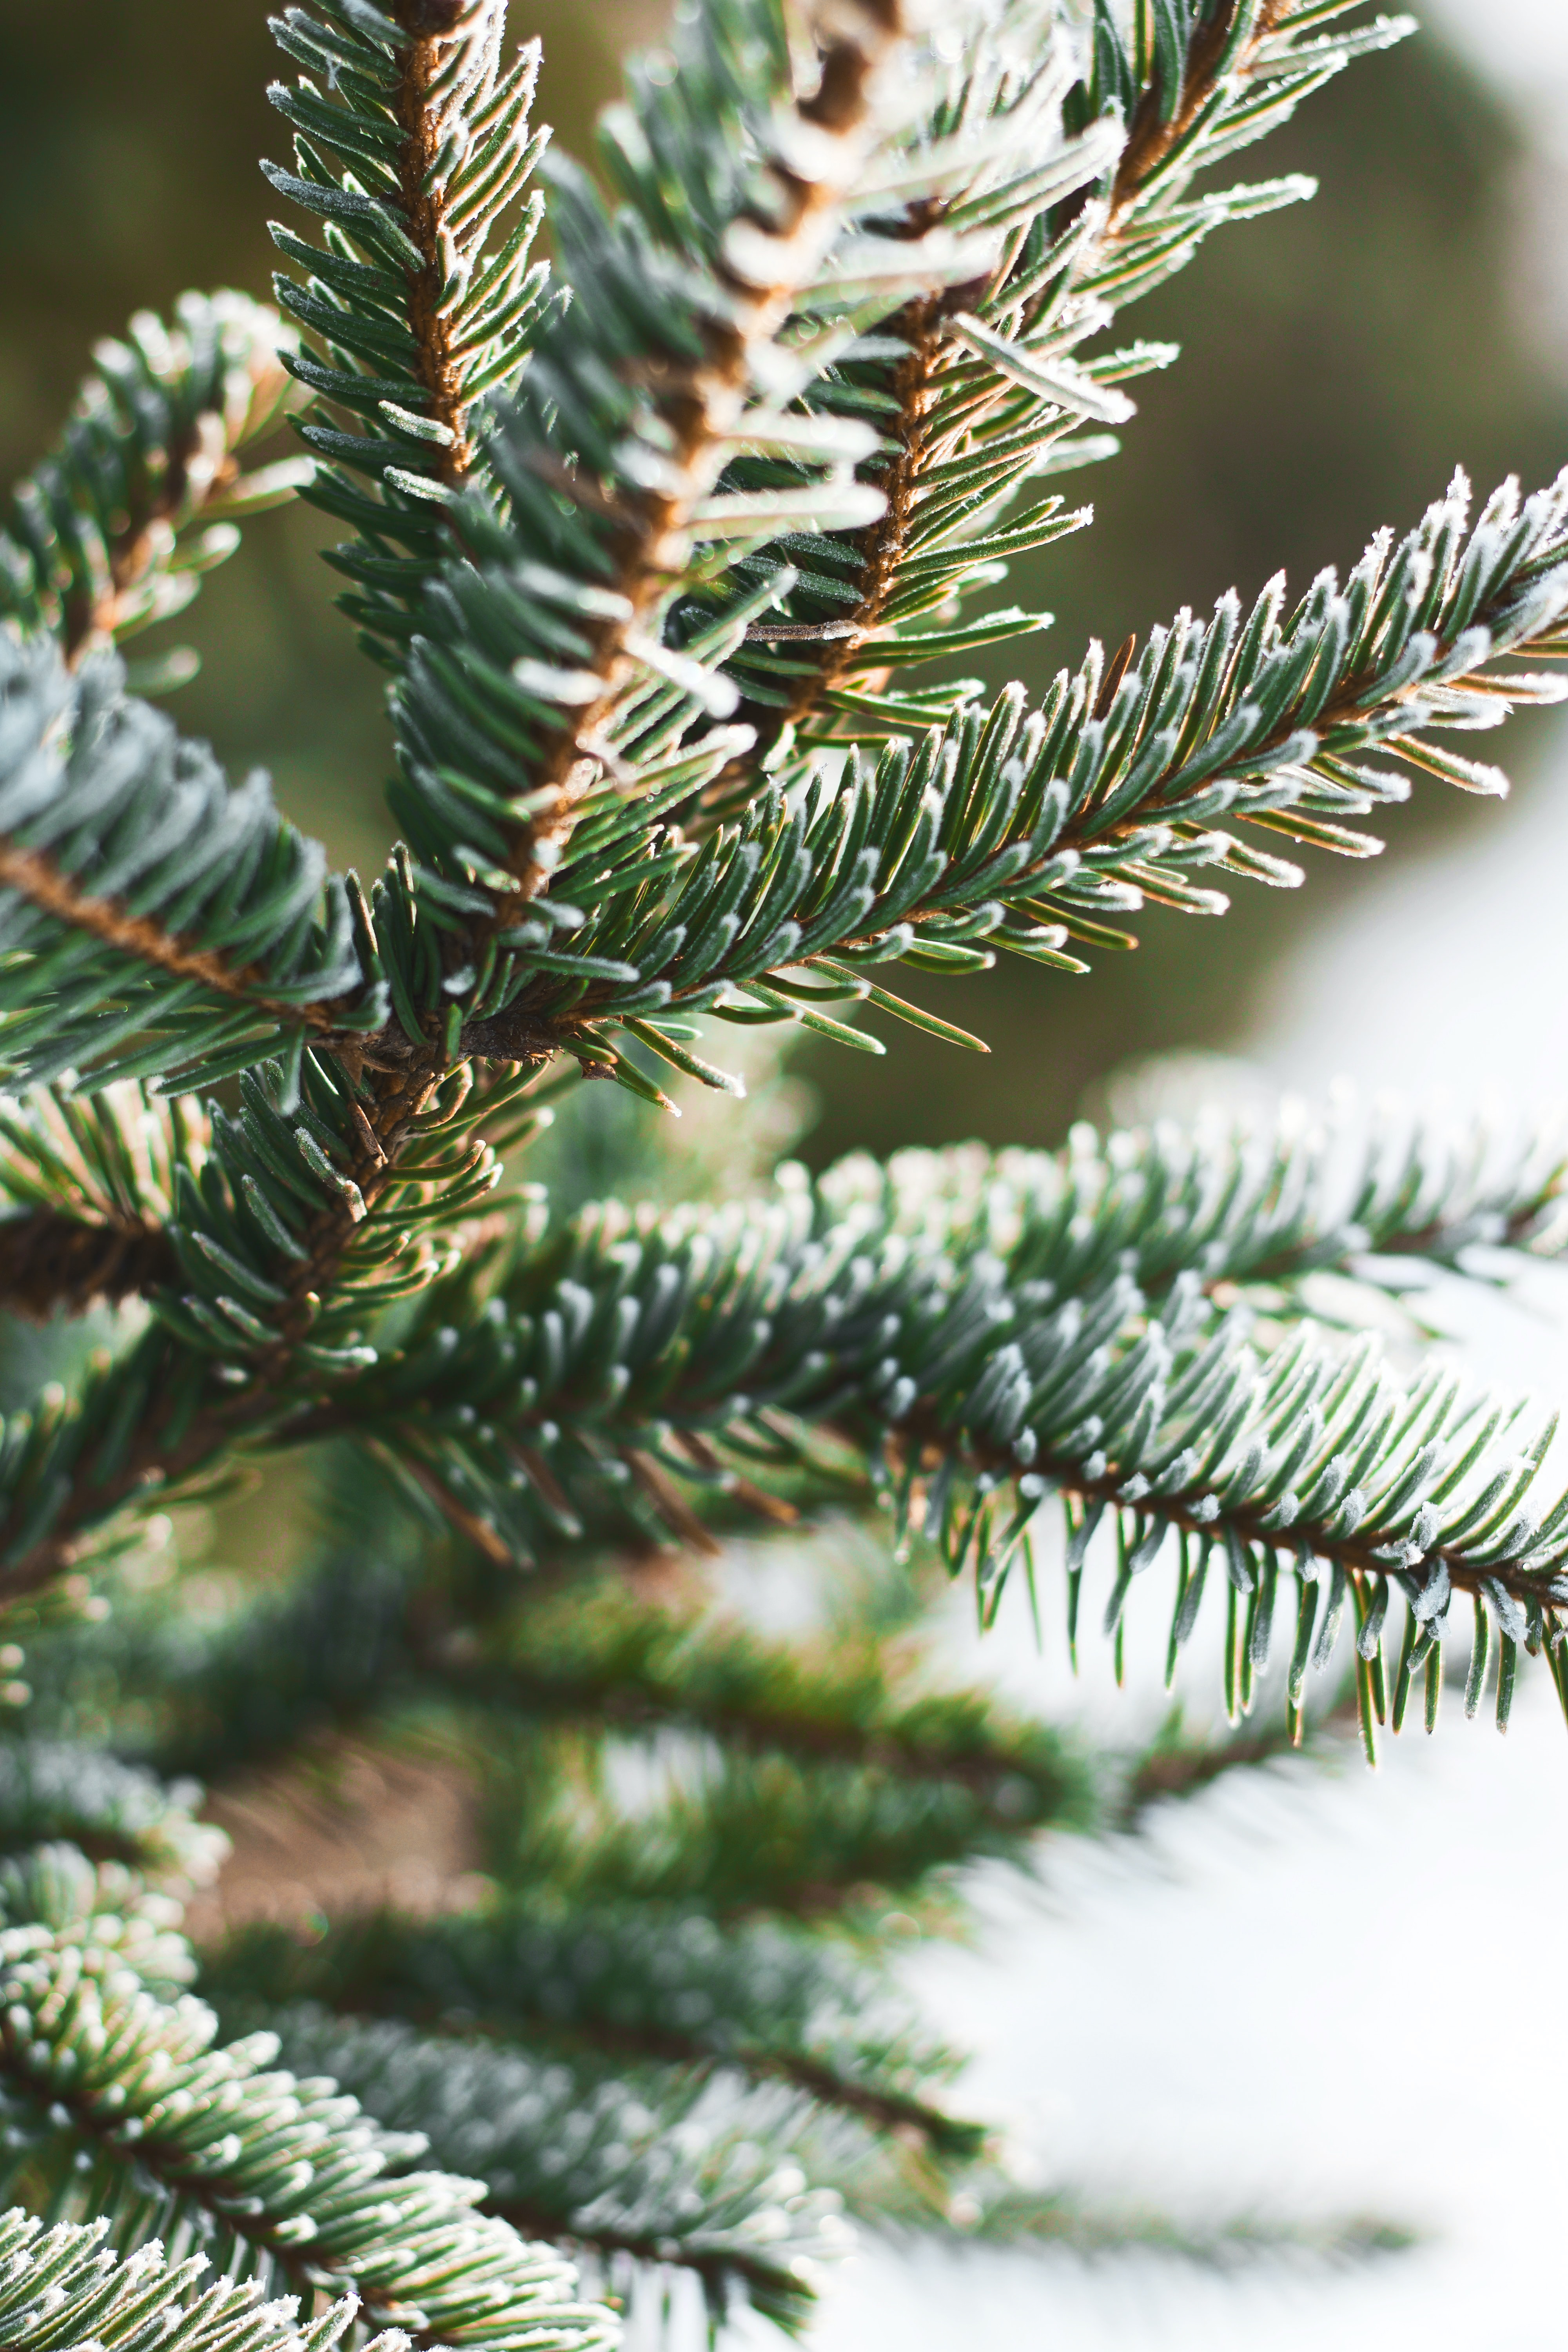 green pine tree close-up photography